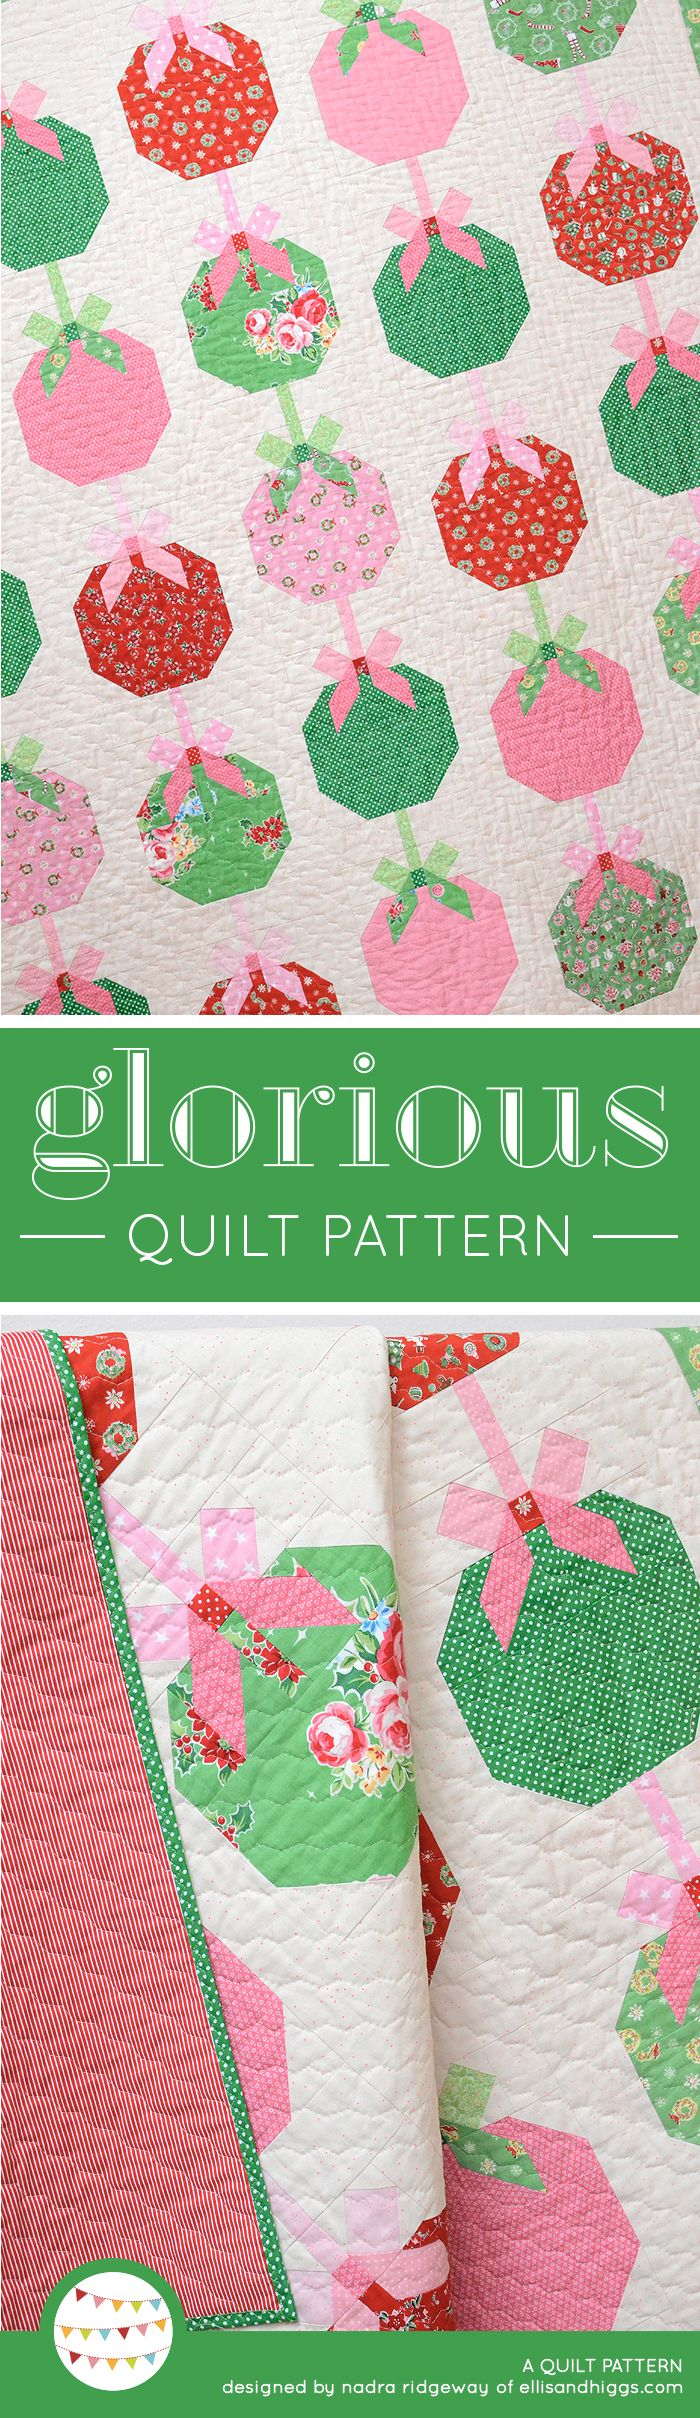 Glorious Christmas quilt pattern by Nadra Ridgeway of ellis & higgs. Patchwork pattern, easy quilt pattern, Christmas quilt ideas, Christmas crafts, Christmas DIY craft project, Winter crafts, Christmas quilt block, Bauble quilt block. Patchwork Anleitung, Patchworkdecke, Patchwork Ideen, Weihnachten, Weihnachtsquilt, Christbaumkugeln, Weihnachtsgeschenke nähen, Weihnachtsgeschenke selber machen.